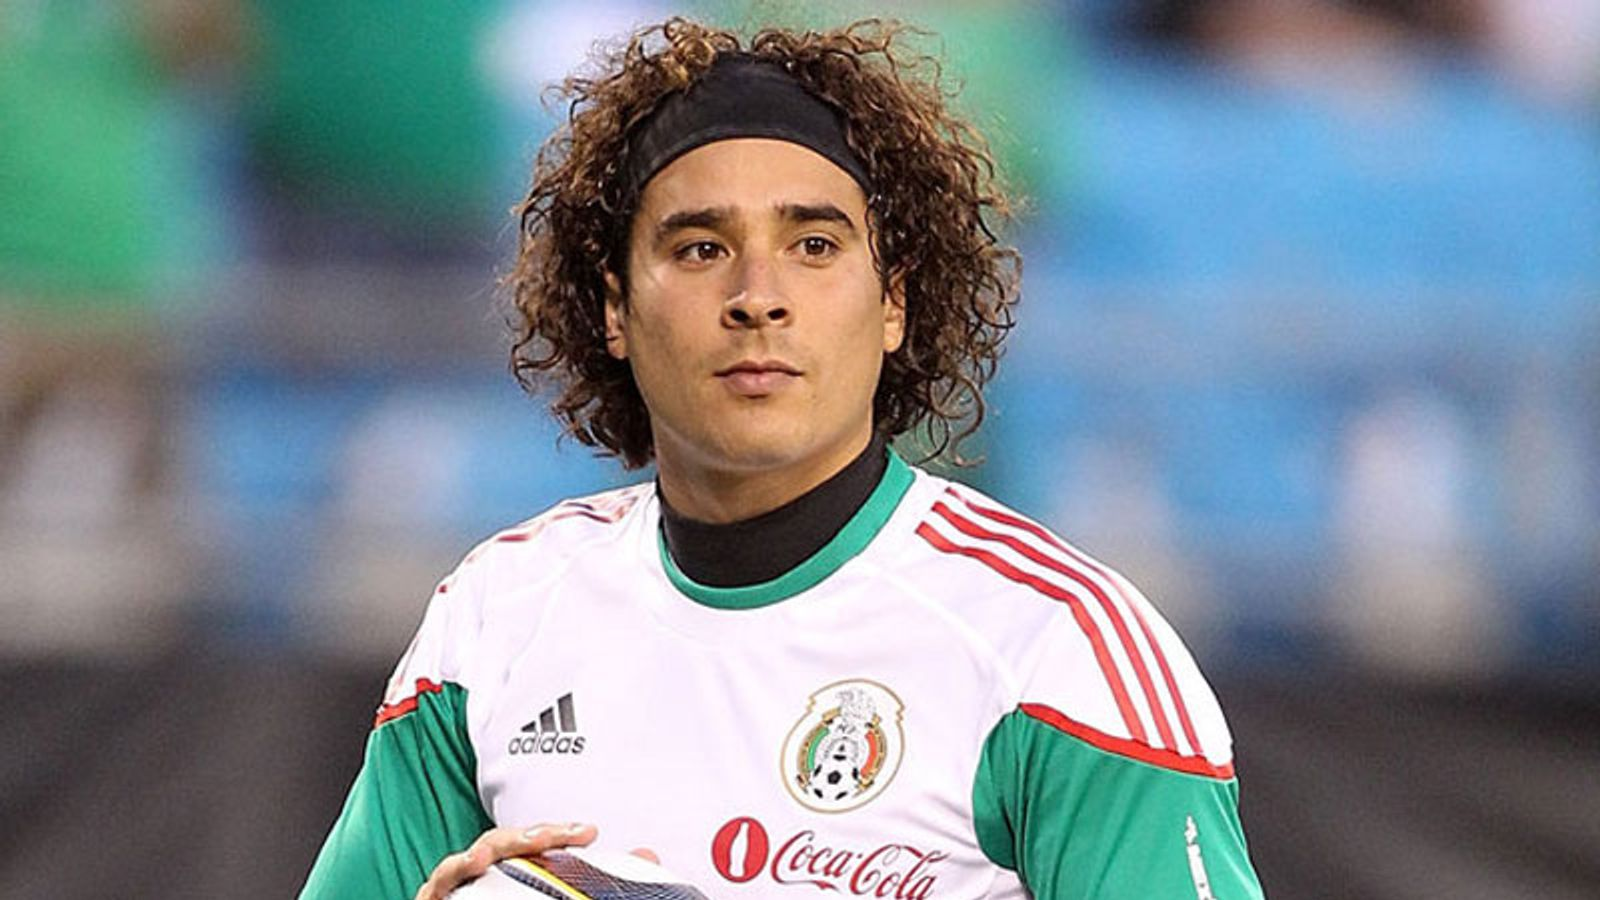 b7115297d Ajaccio keeper Guillermo Ochoa claims to be wanted by Liverpool ...